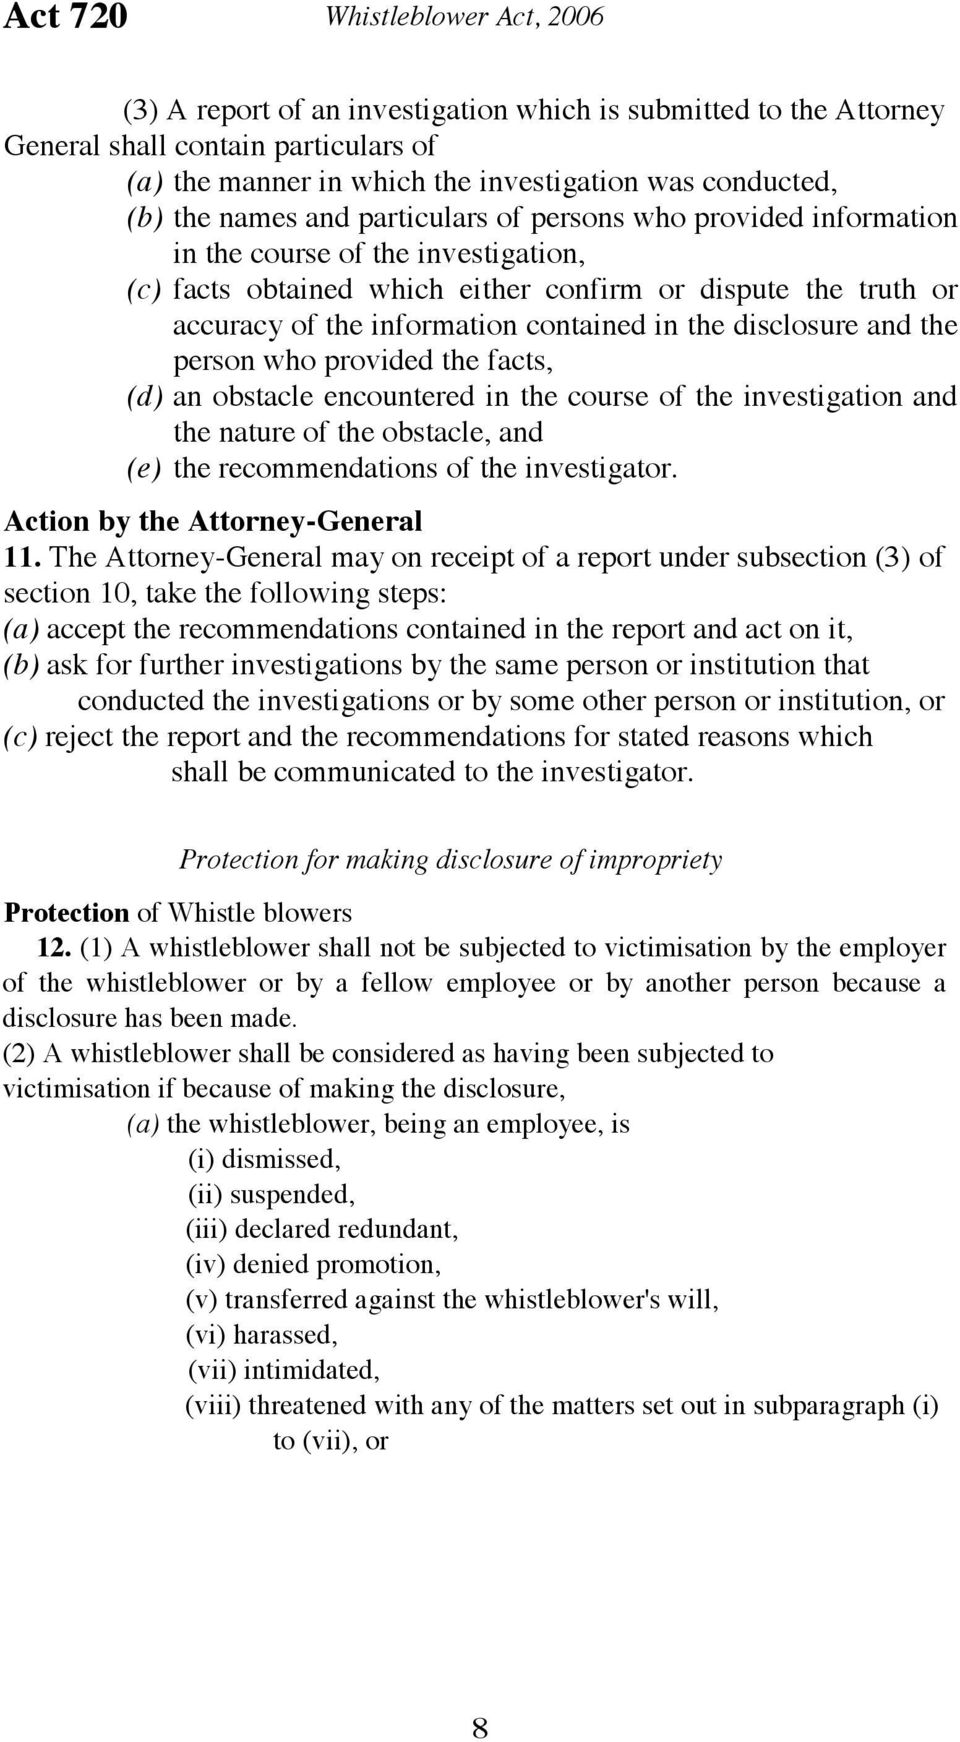 in the disclosure and the person who provided the facts, (d) an obstacle encountered in the course of the investigation and the nature of the obstacle, and (e) the recommendations of the investigator.